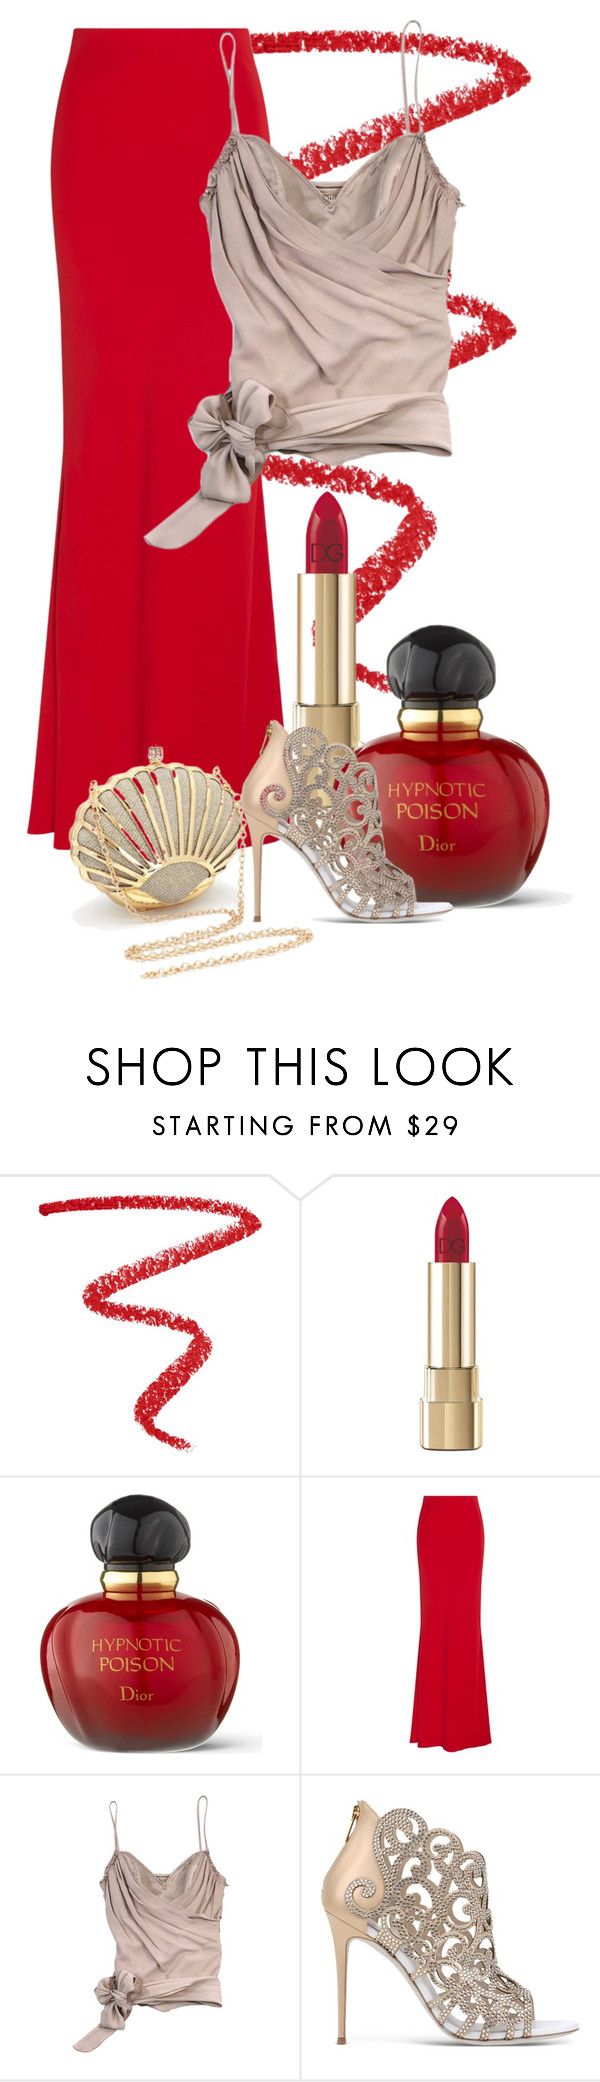 """""""Love the Red Maxi Skirt"""" by vivien-degraaf on Polyvore featuring NARS Cosmetics, Dolce&Gabbana, Christian Dior, Alexander McQueen, John Galliano and René Caovilla"""